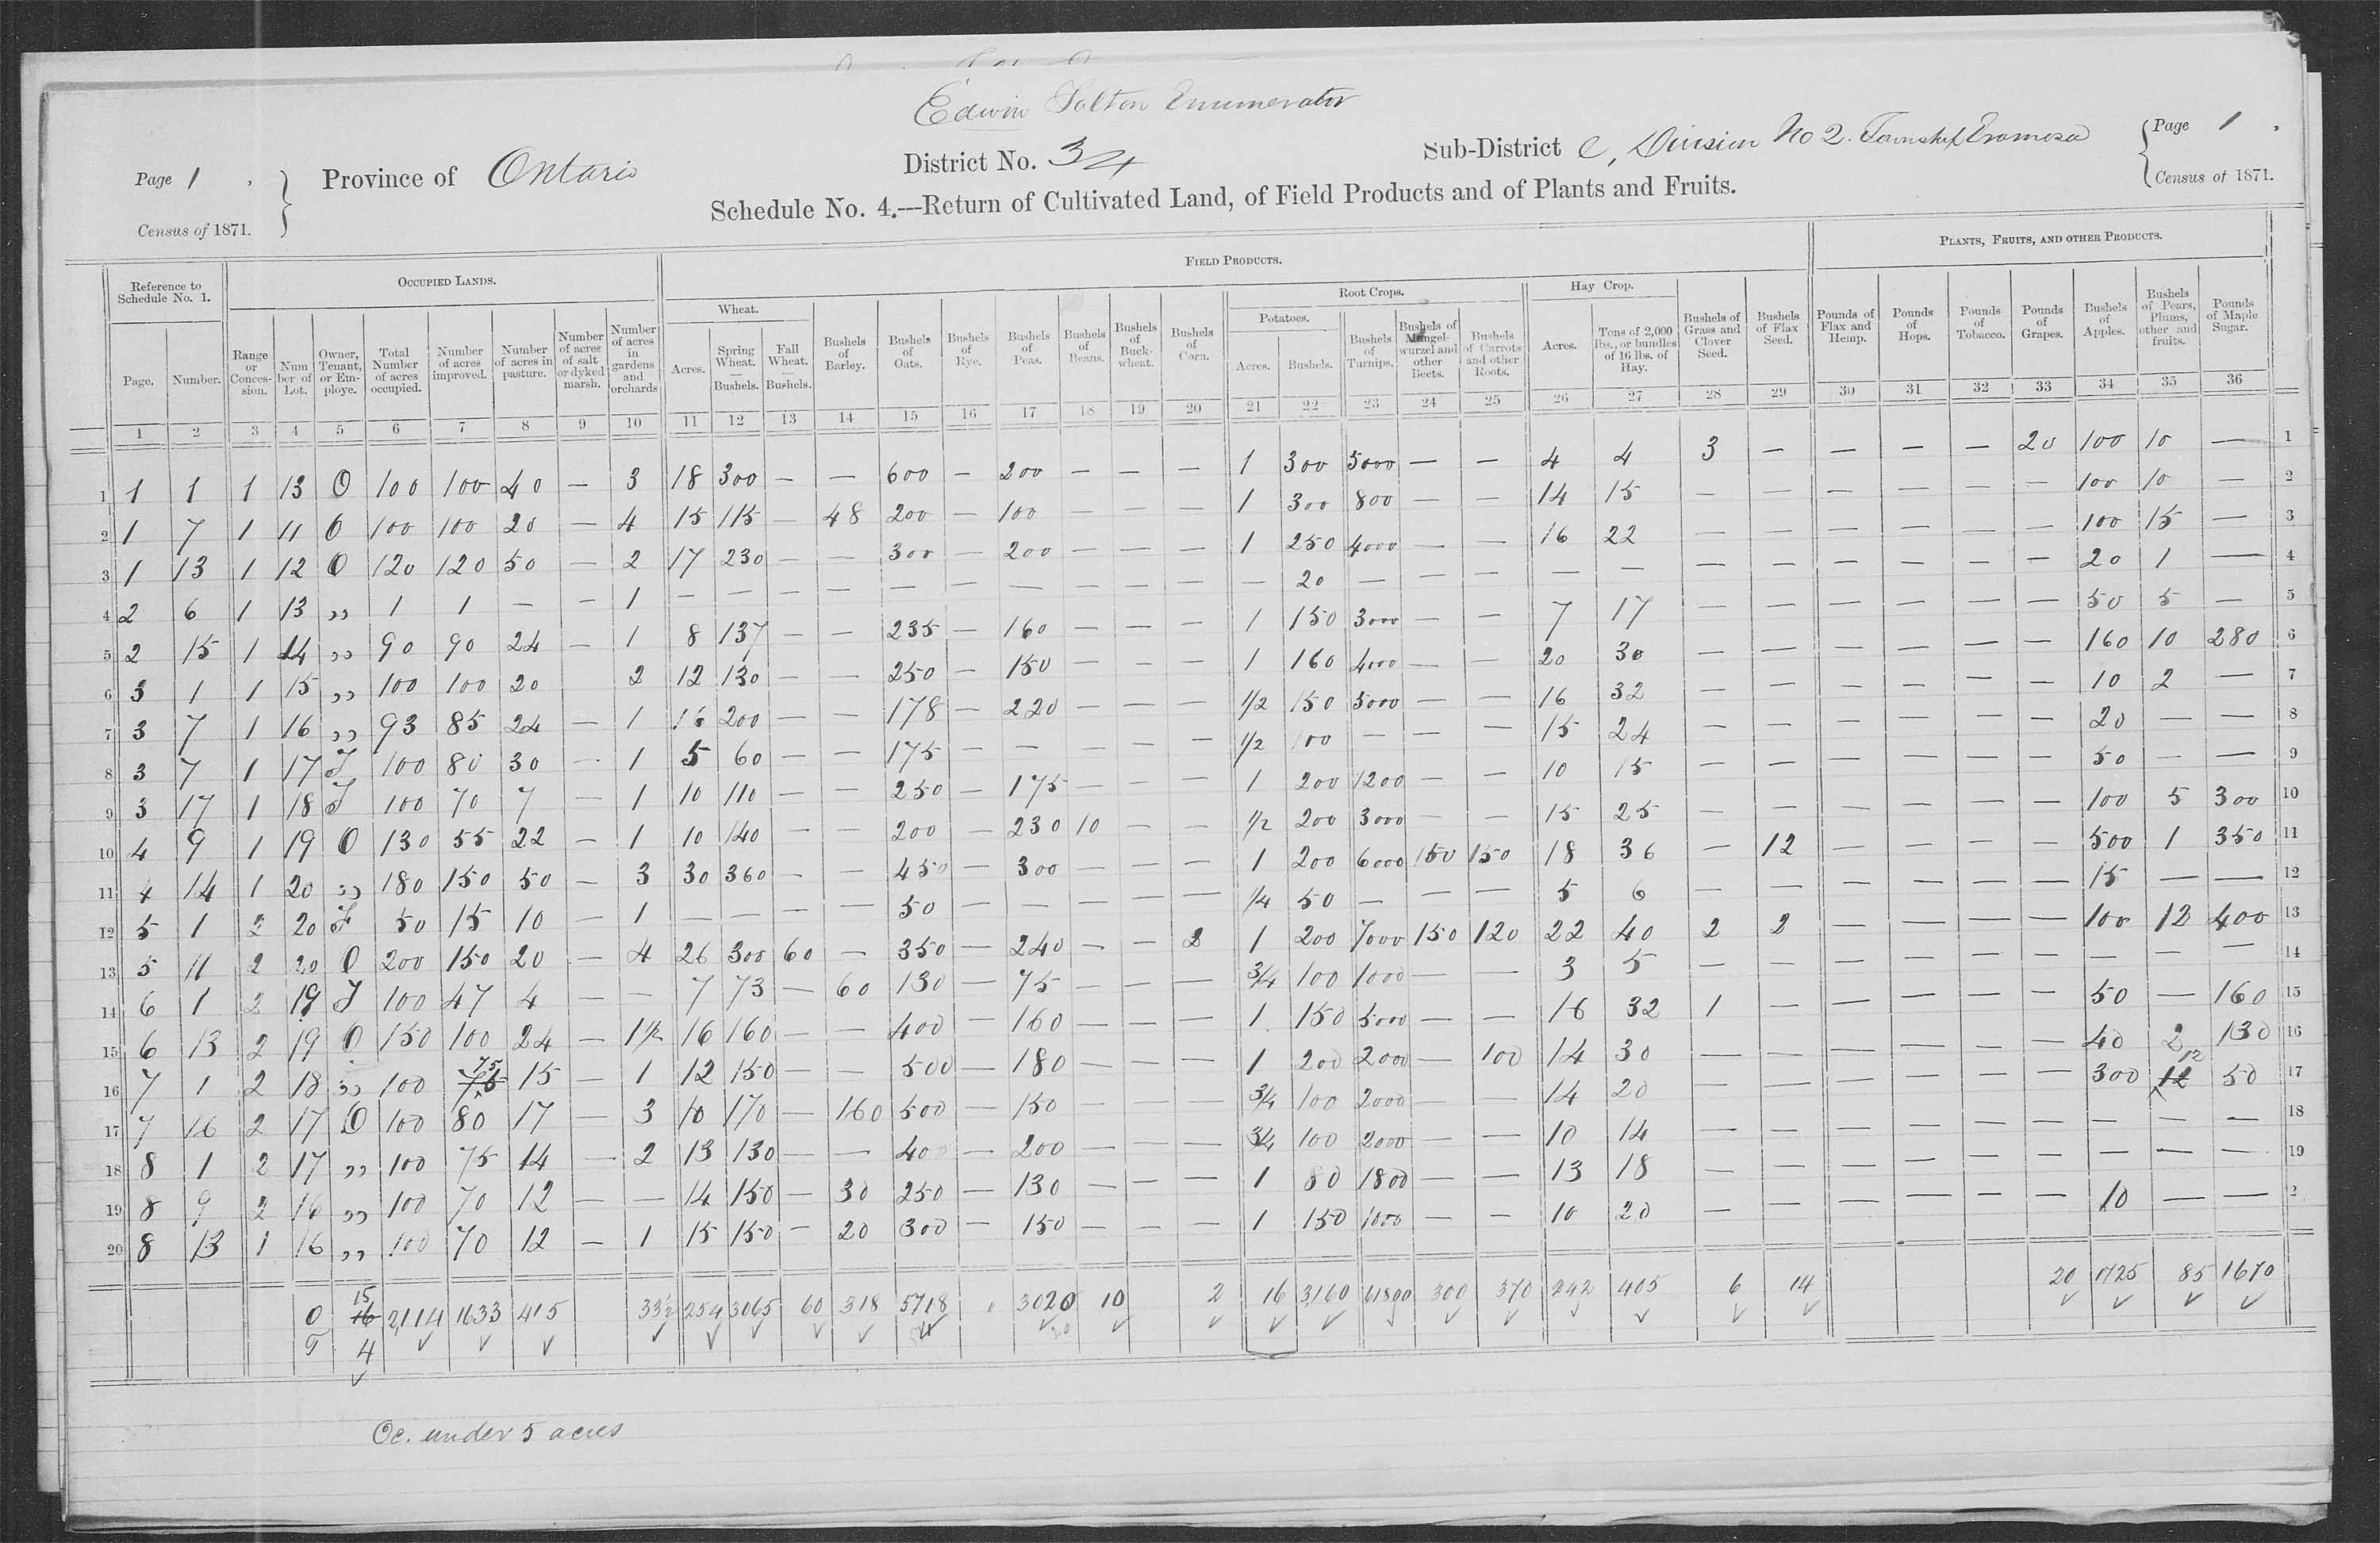 Title: Census of Canada, 1871 - Mikan Number: 142105 - Microform: c-9947